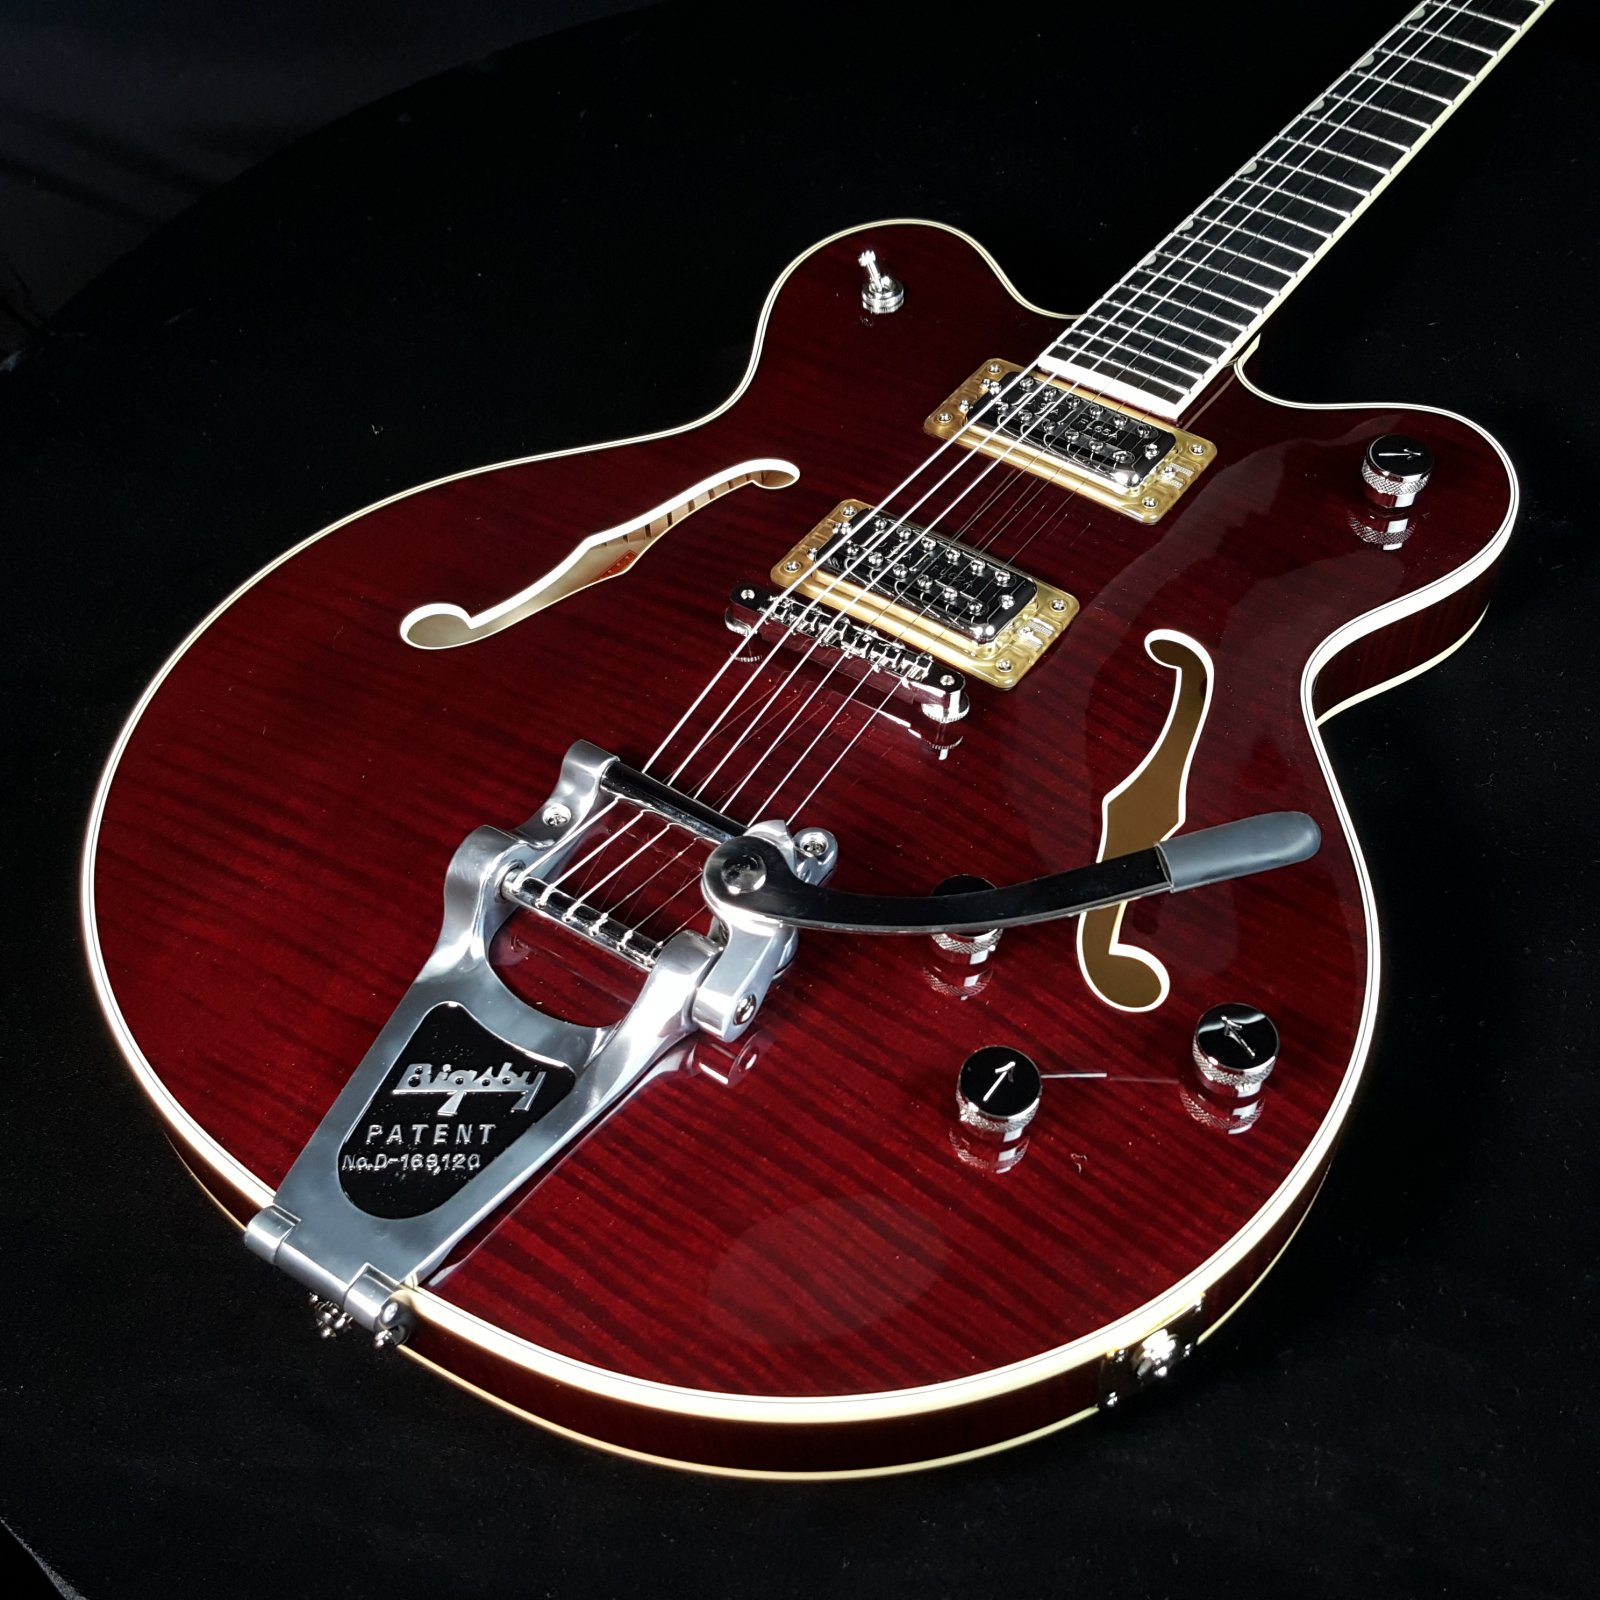 2017 Gretsch G6609TFM Players Limited Edition Broadkaster Cherry with Case